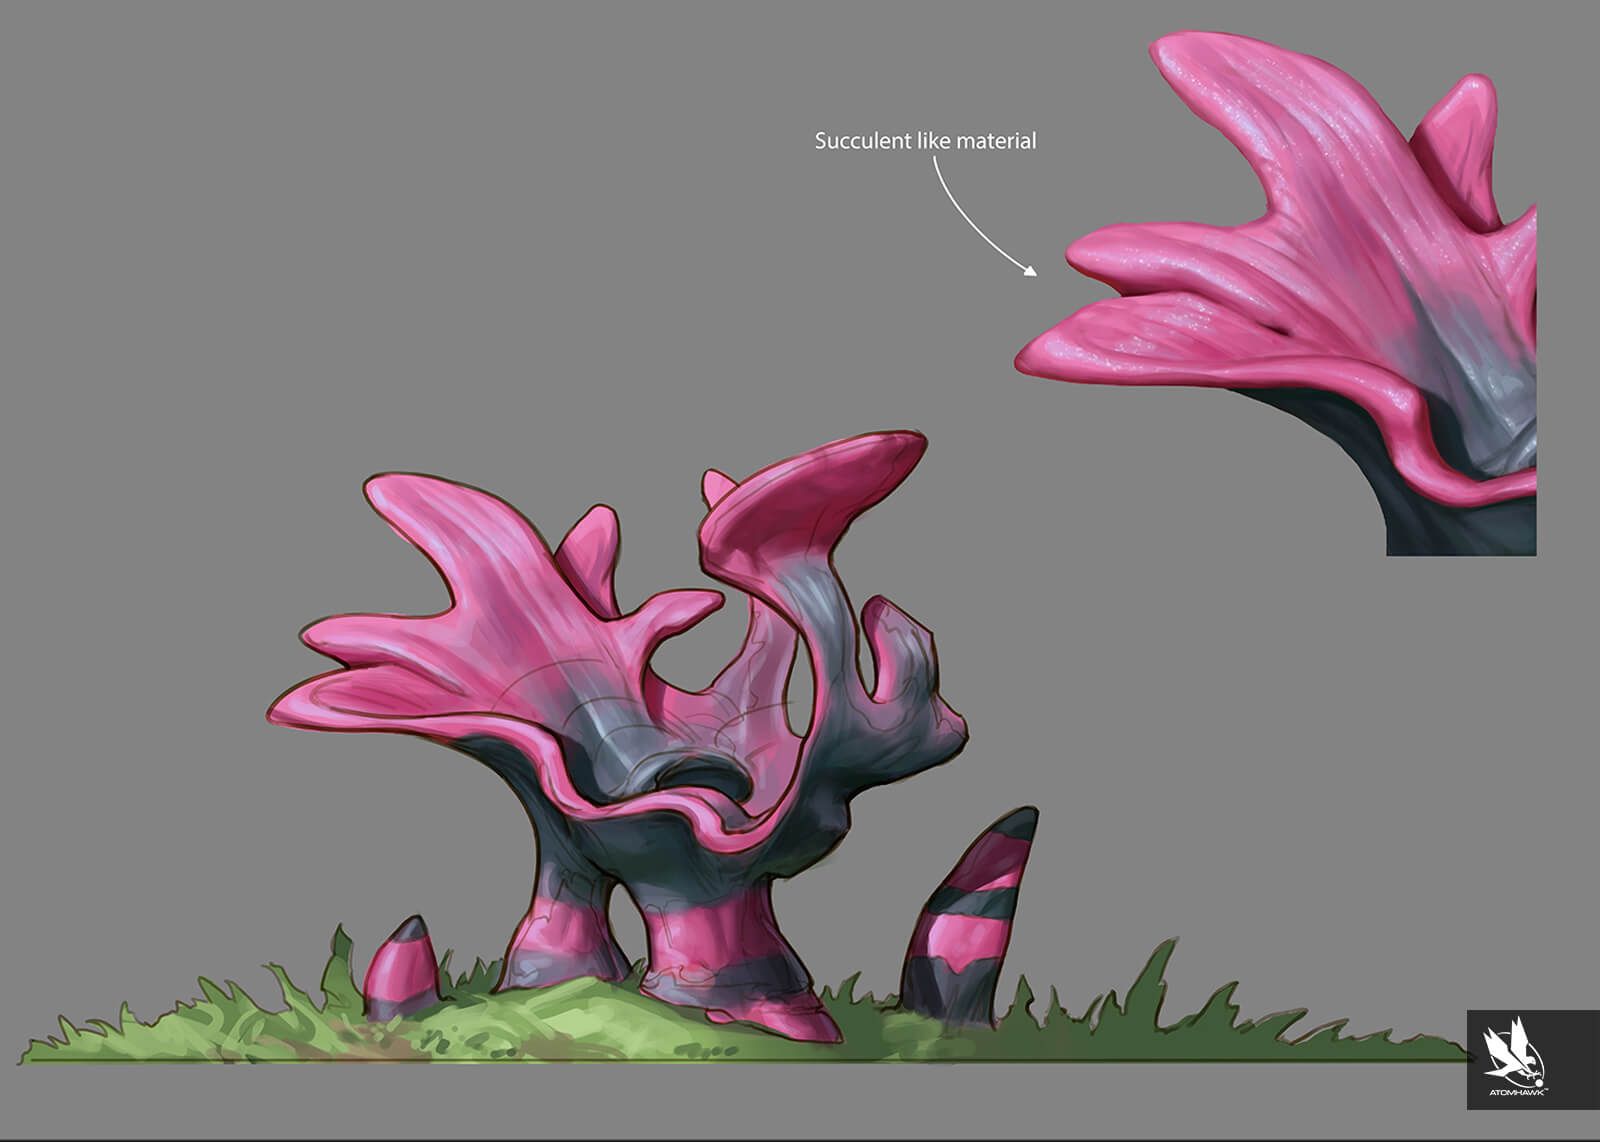 Environment Concept Art for the Unity 3D Concept art work completed by Atomhawk - Scrub Plant Concept 2